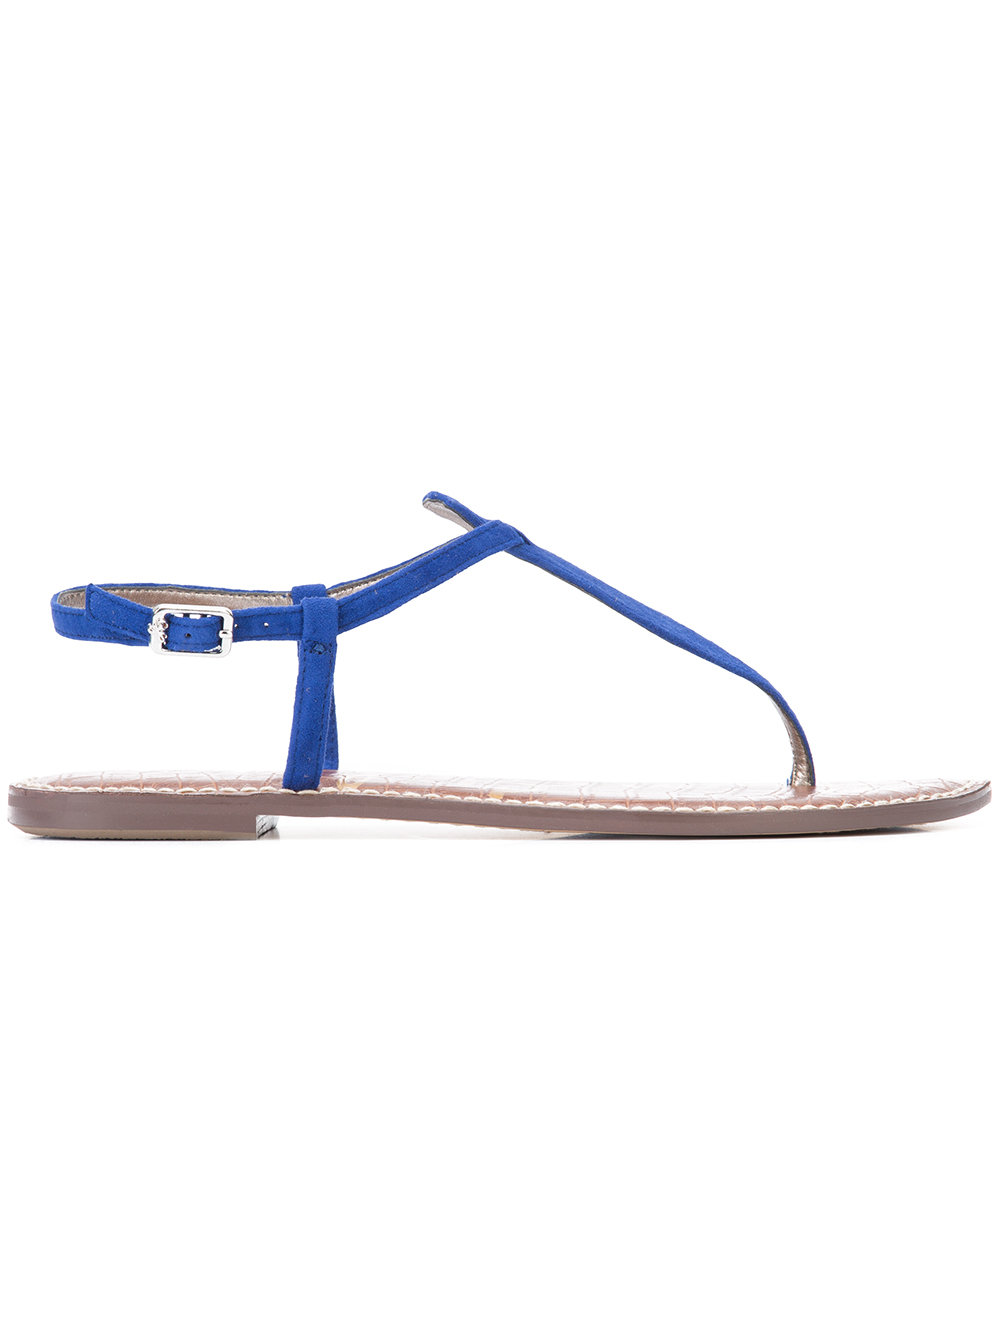 SAM EDELMAN sandals $60